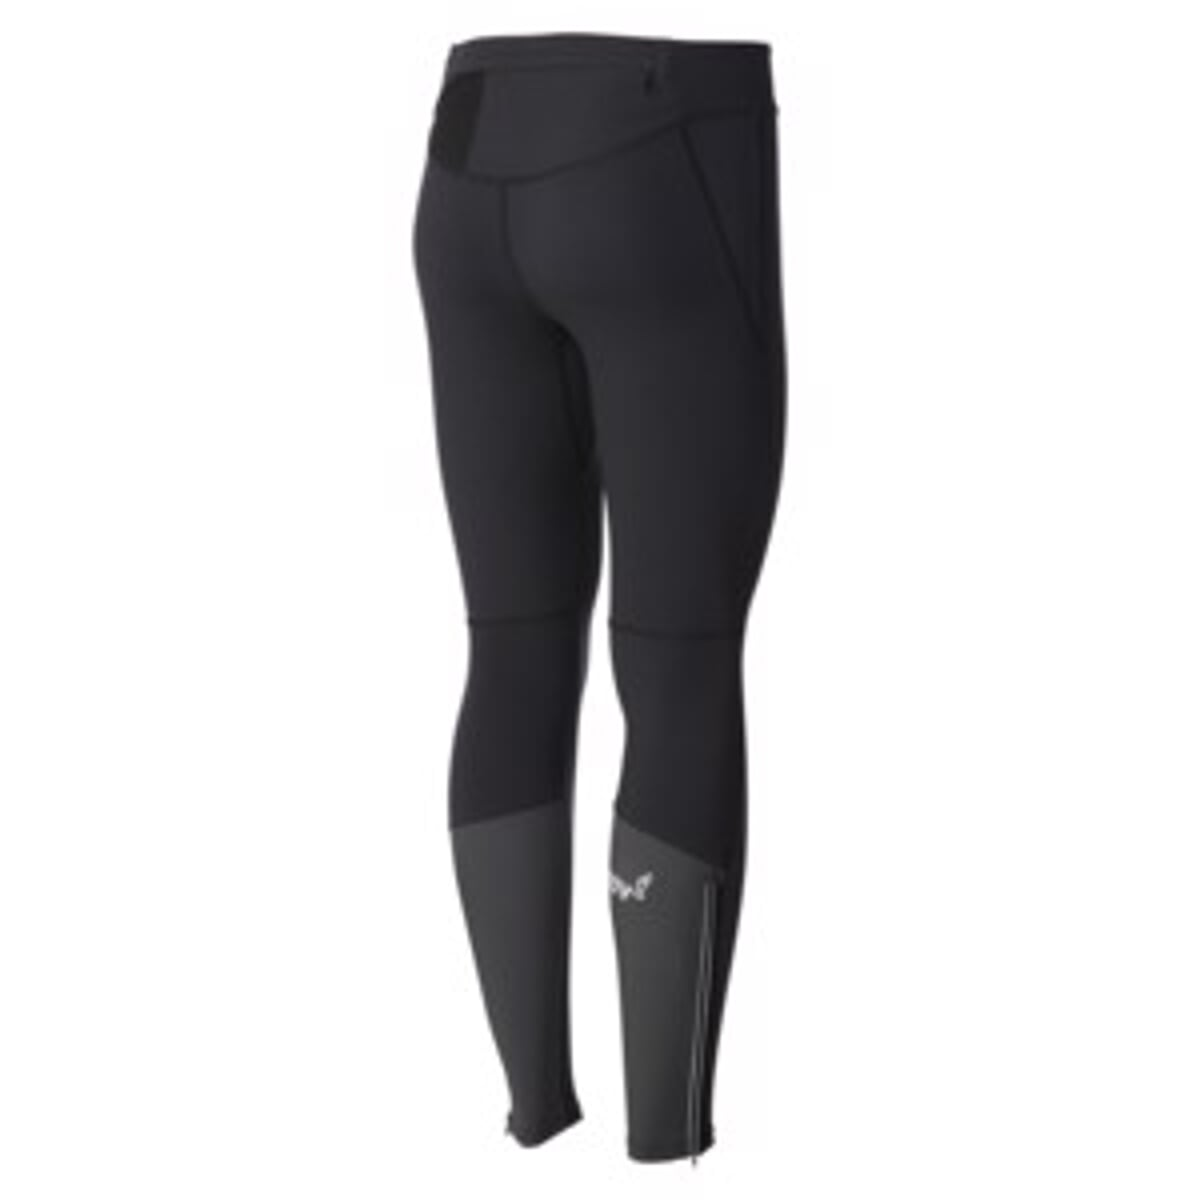 INOV-8 RACE ELITE TIGHT M